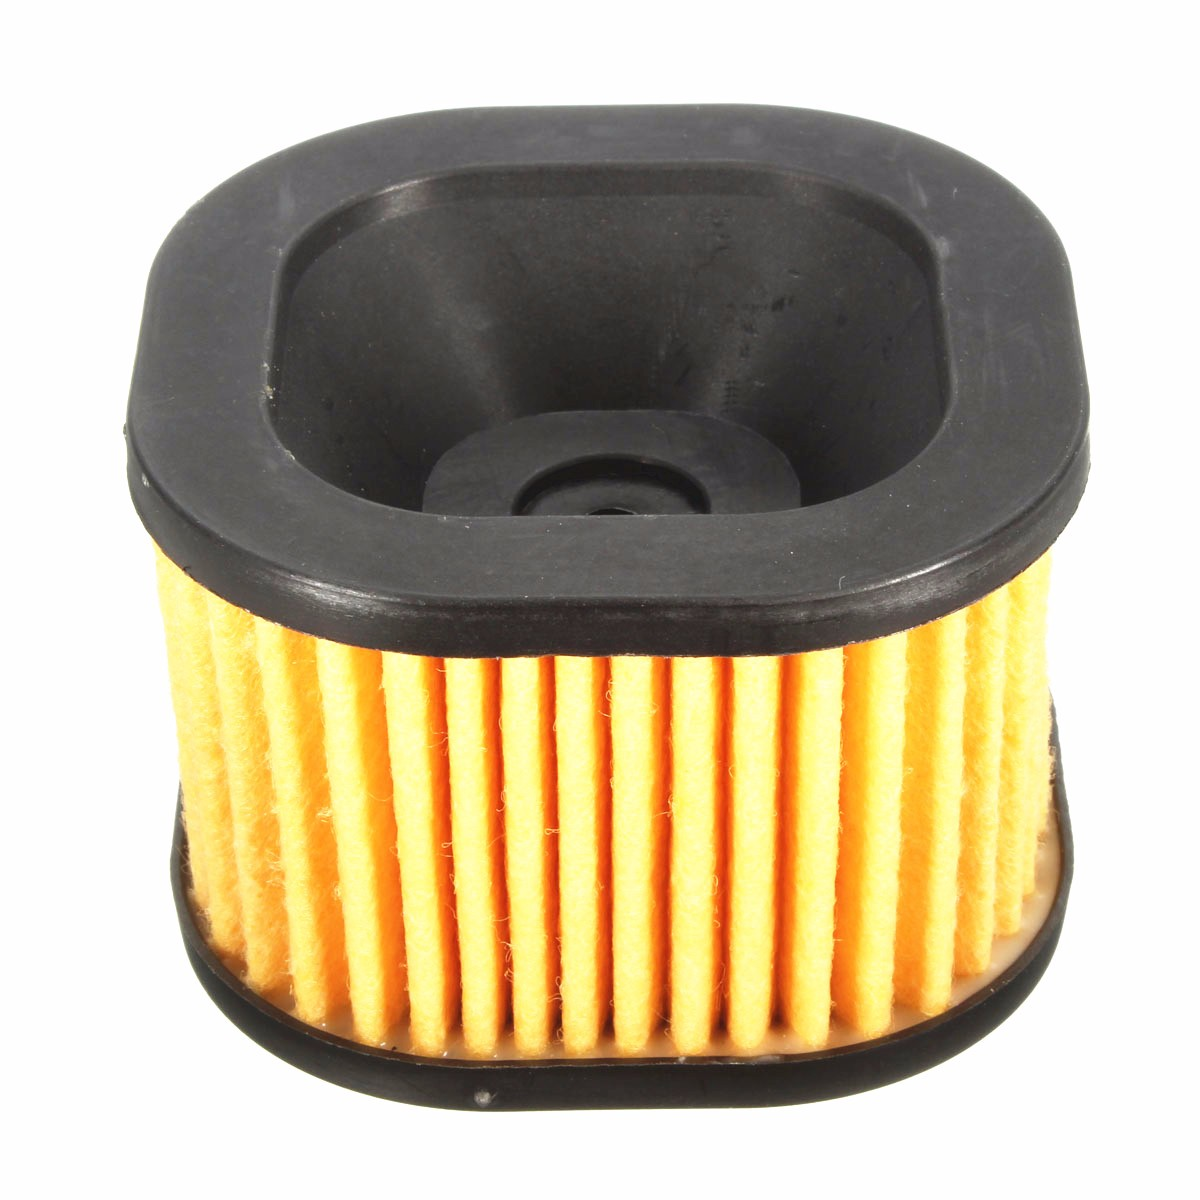 Air Filter HD Heavy Duty 503 81 80 01 For Husqvarna 371 372 372XP